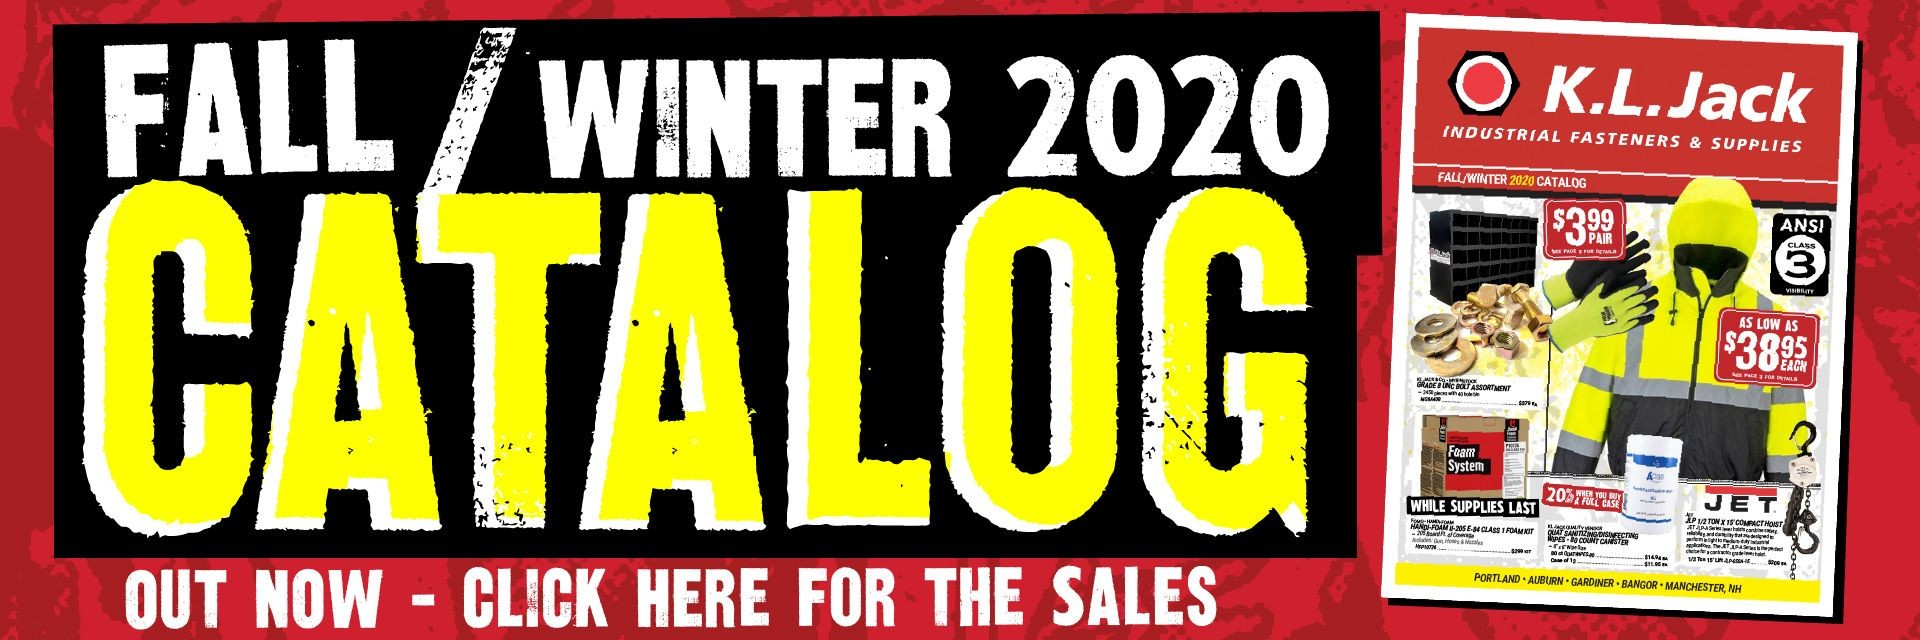 Fall / Winter 2020 Calatog Click Here to see the Sales